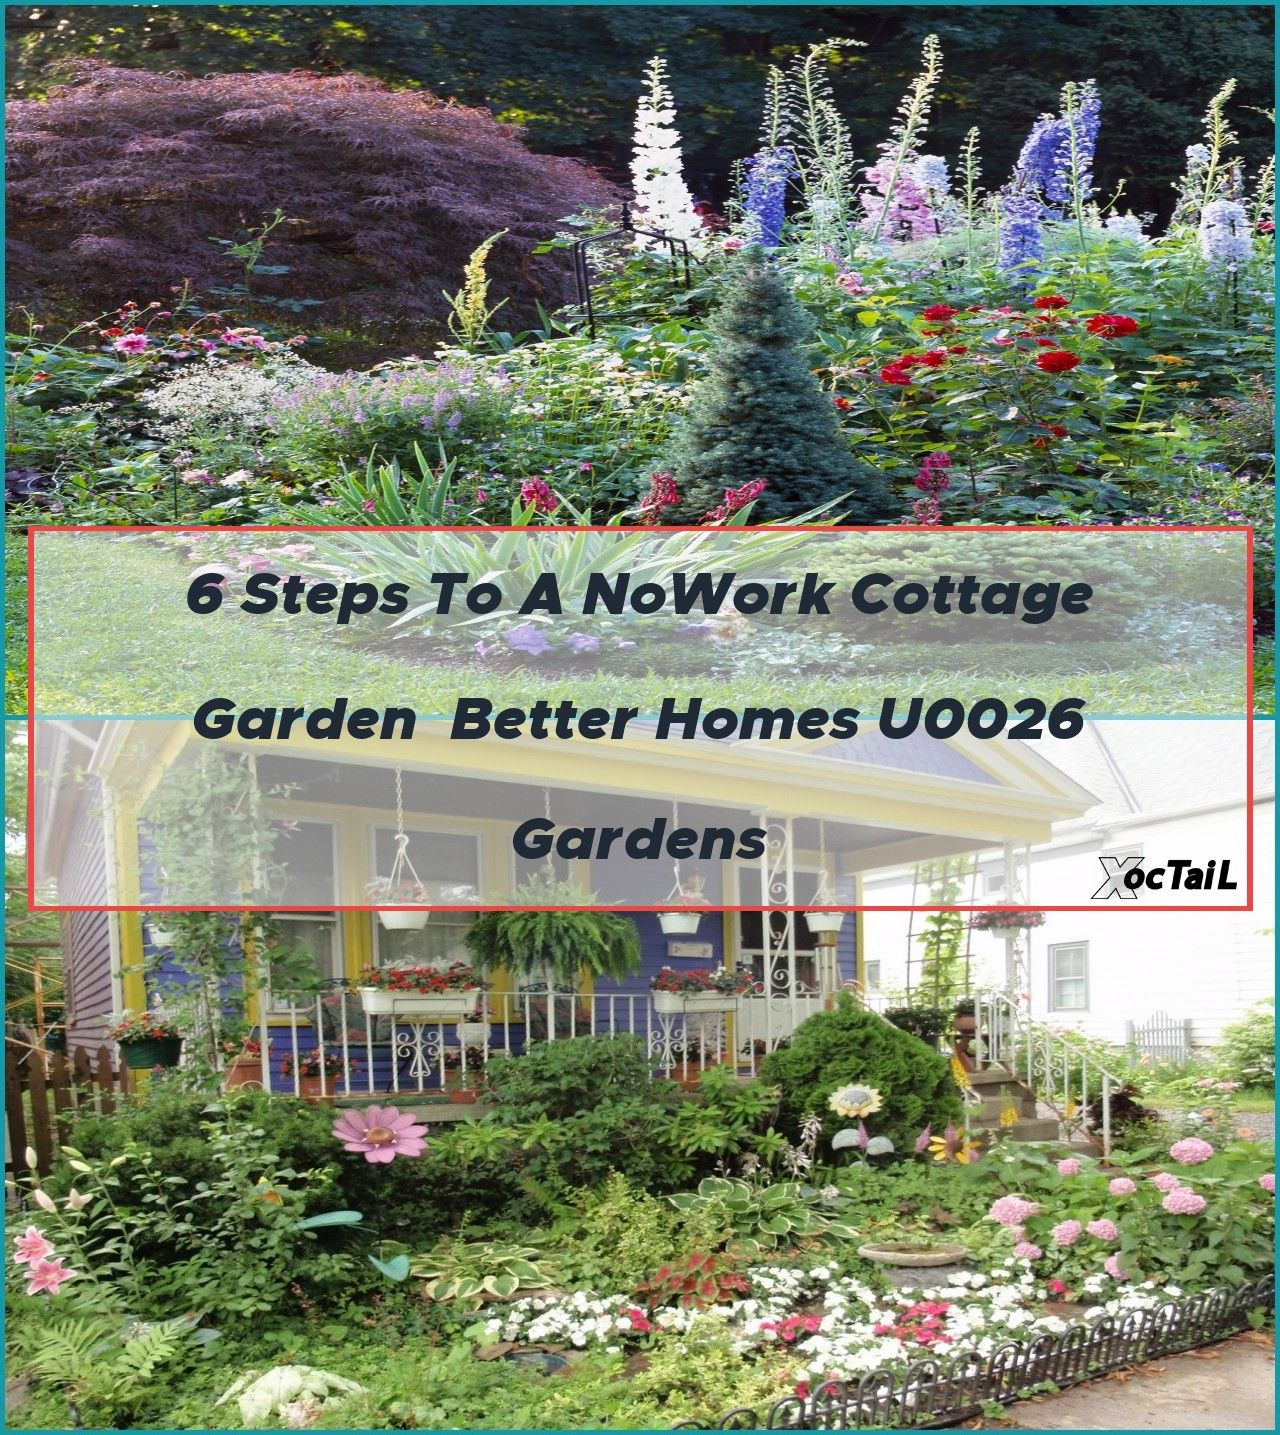 8efae8ac27f2818c43e812fdab75b656 - Better Homes And Gardens Step By Step Landscaping